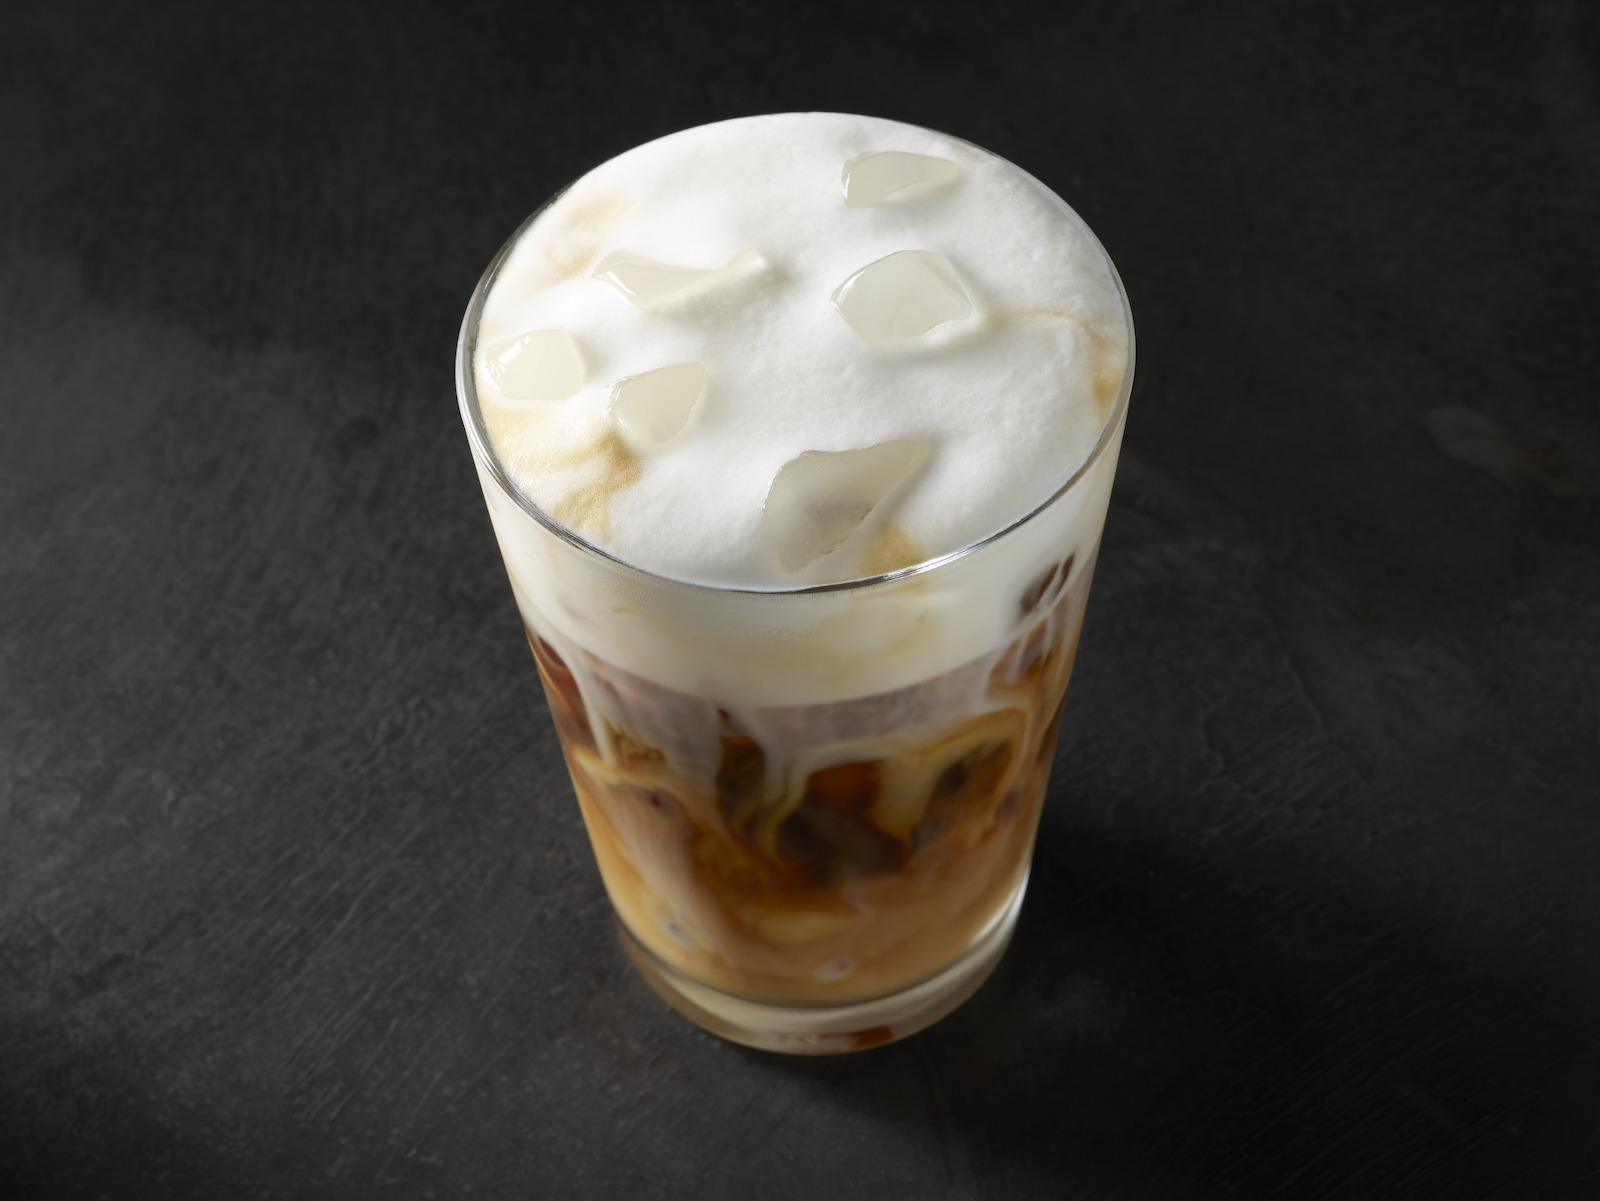 starbucks-cold-foam-cappuccino-FT-BLOG0418.jpg